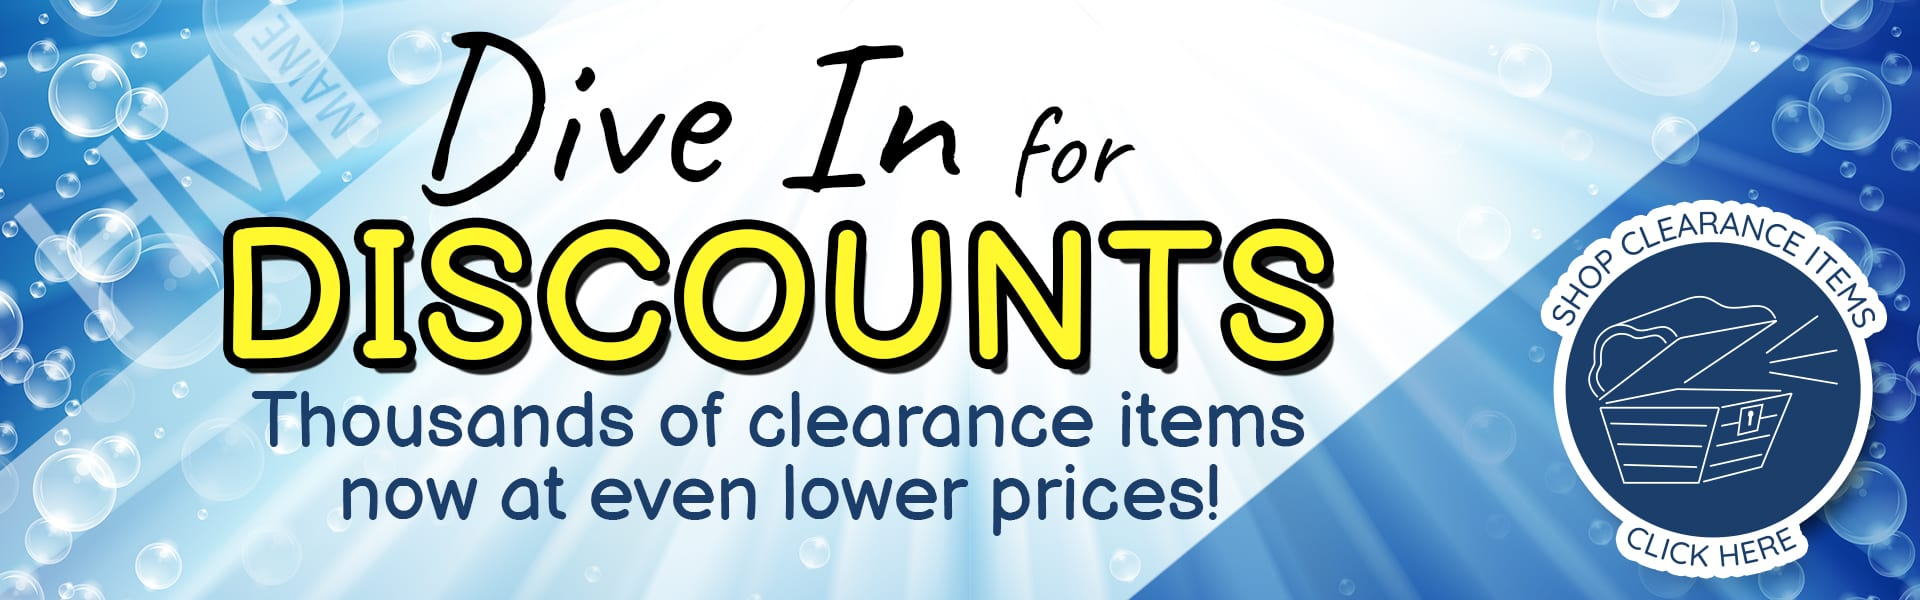 Dive in for discounts! Clearance items now even lower prices!